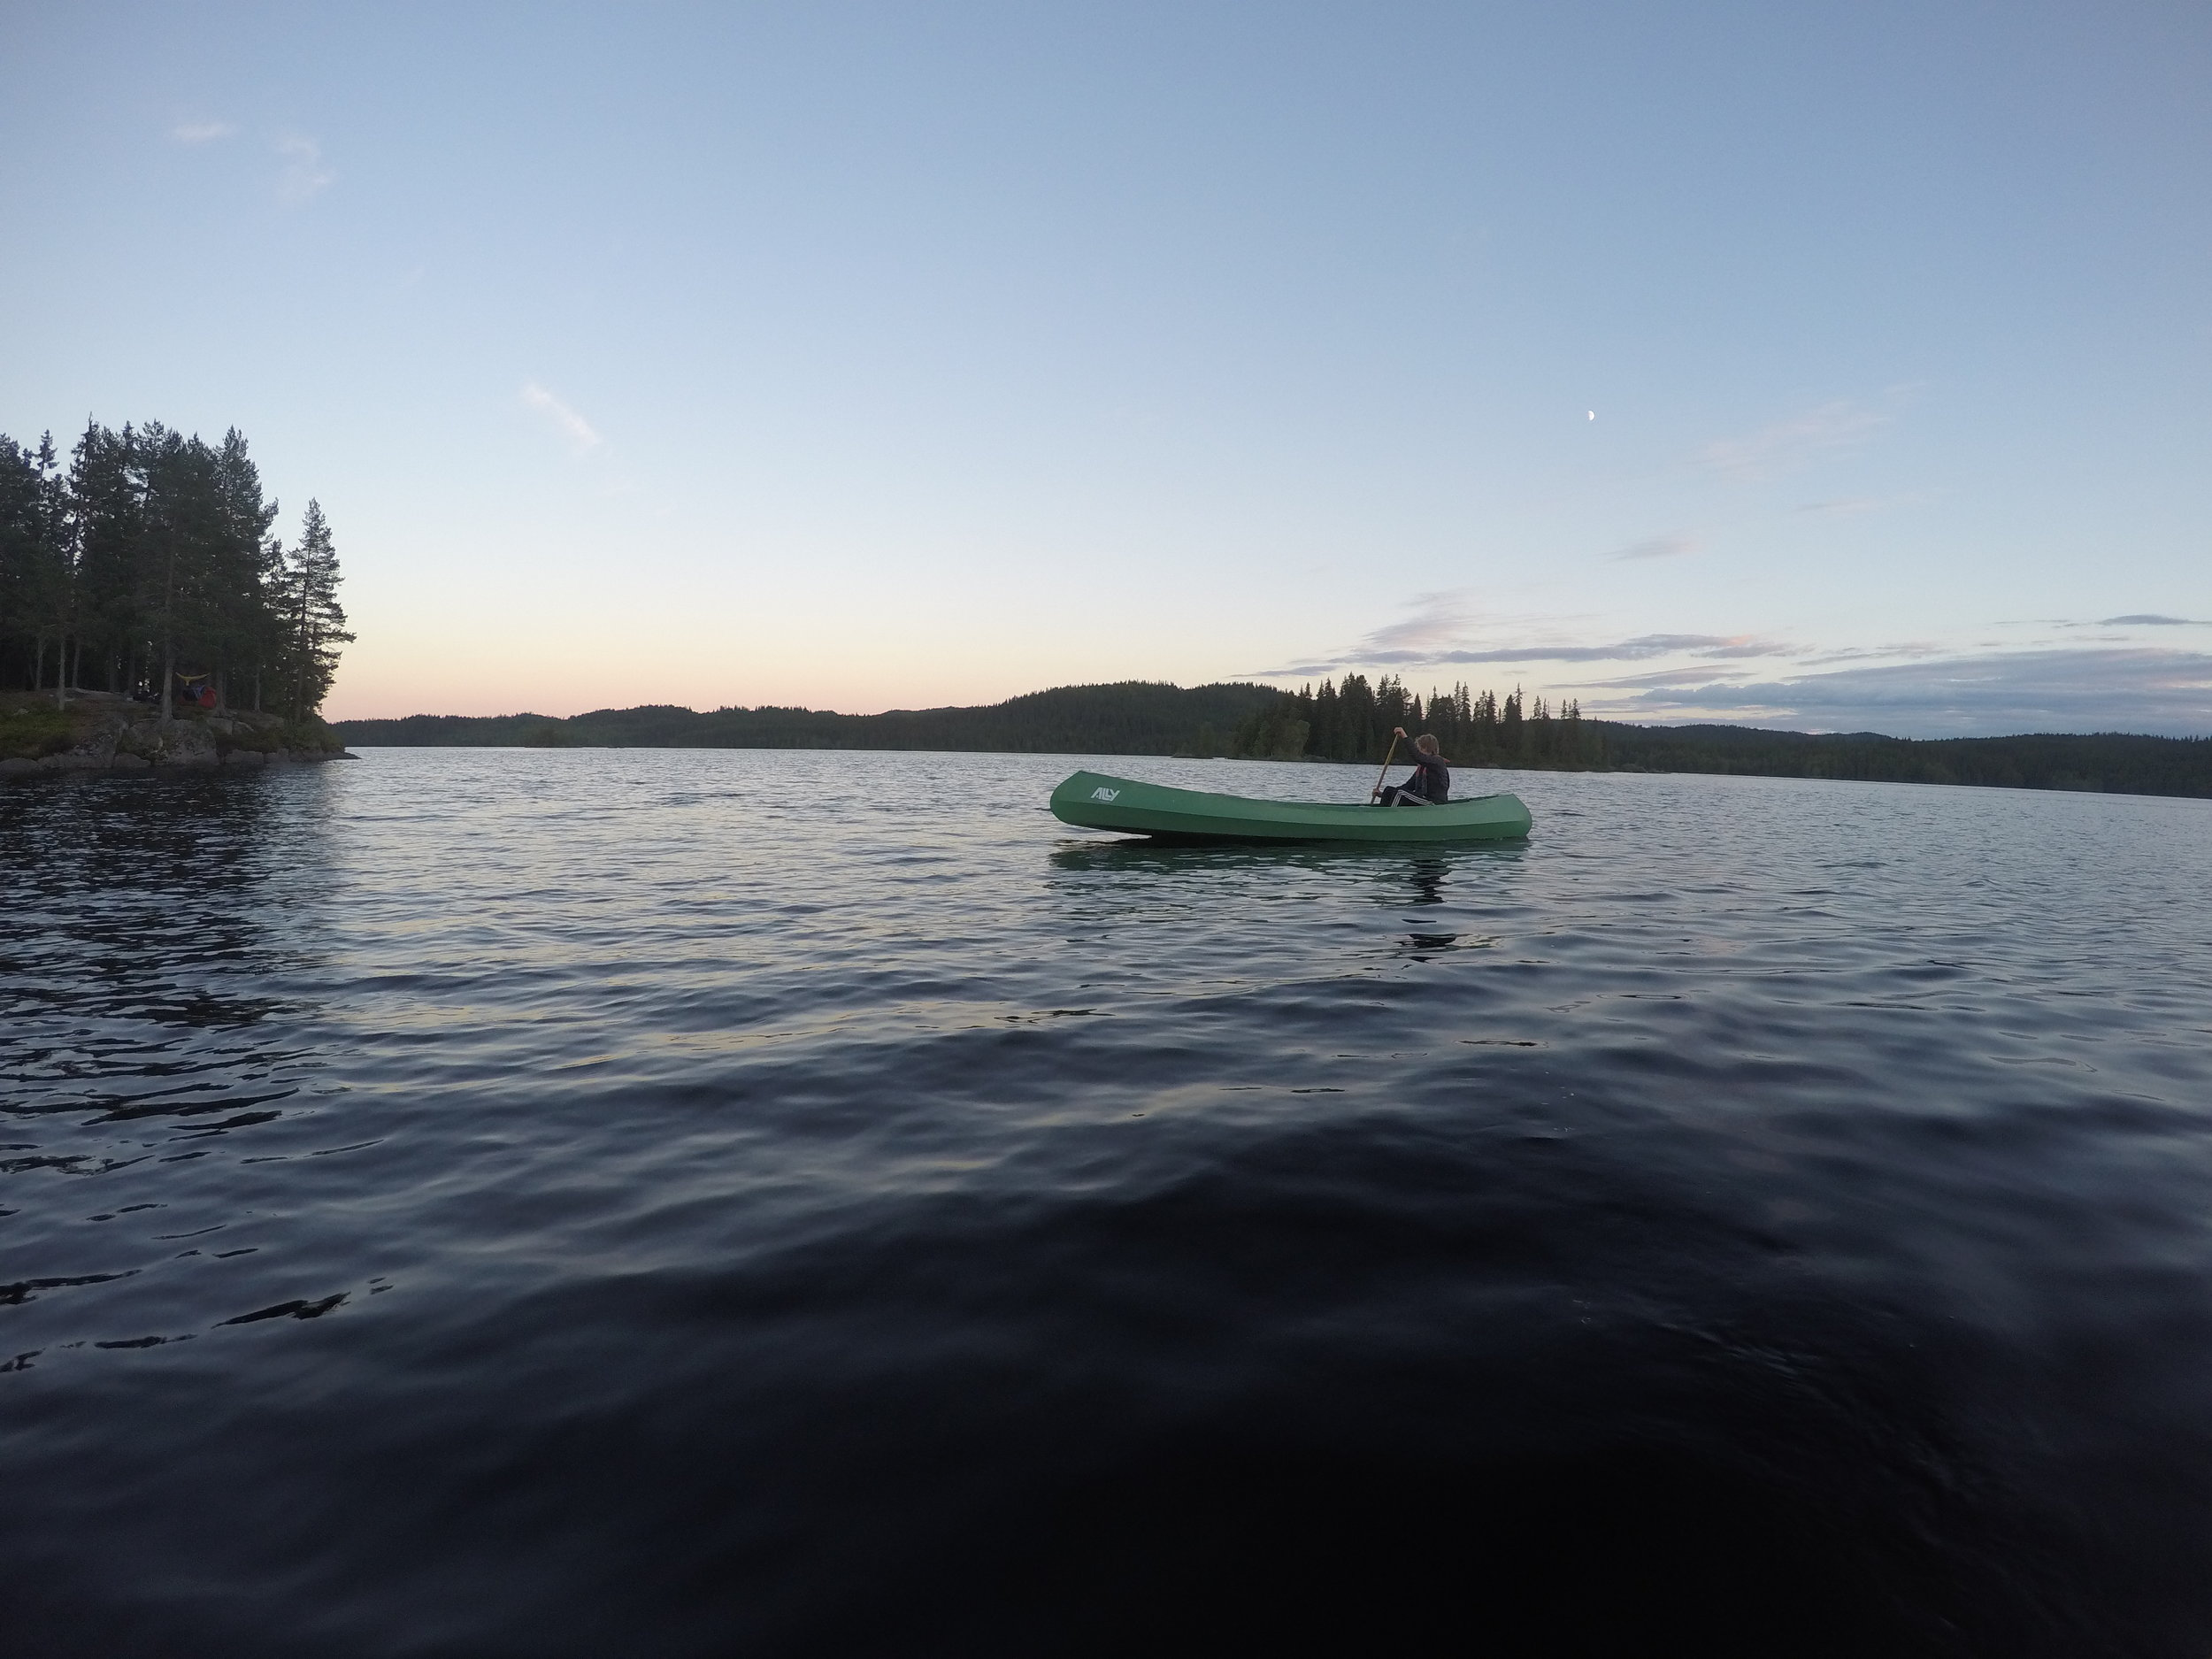 Evening at  Katnosa , one of the many lakes North of Oslo